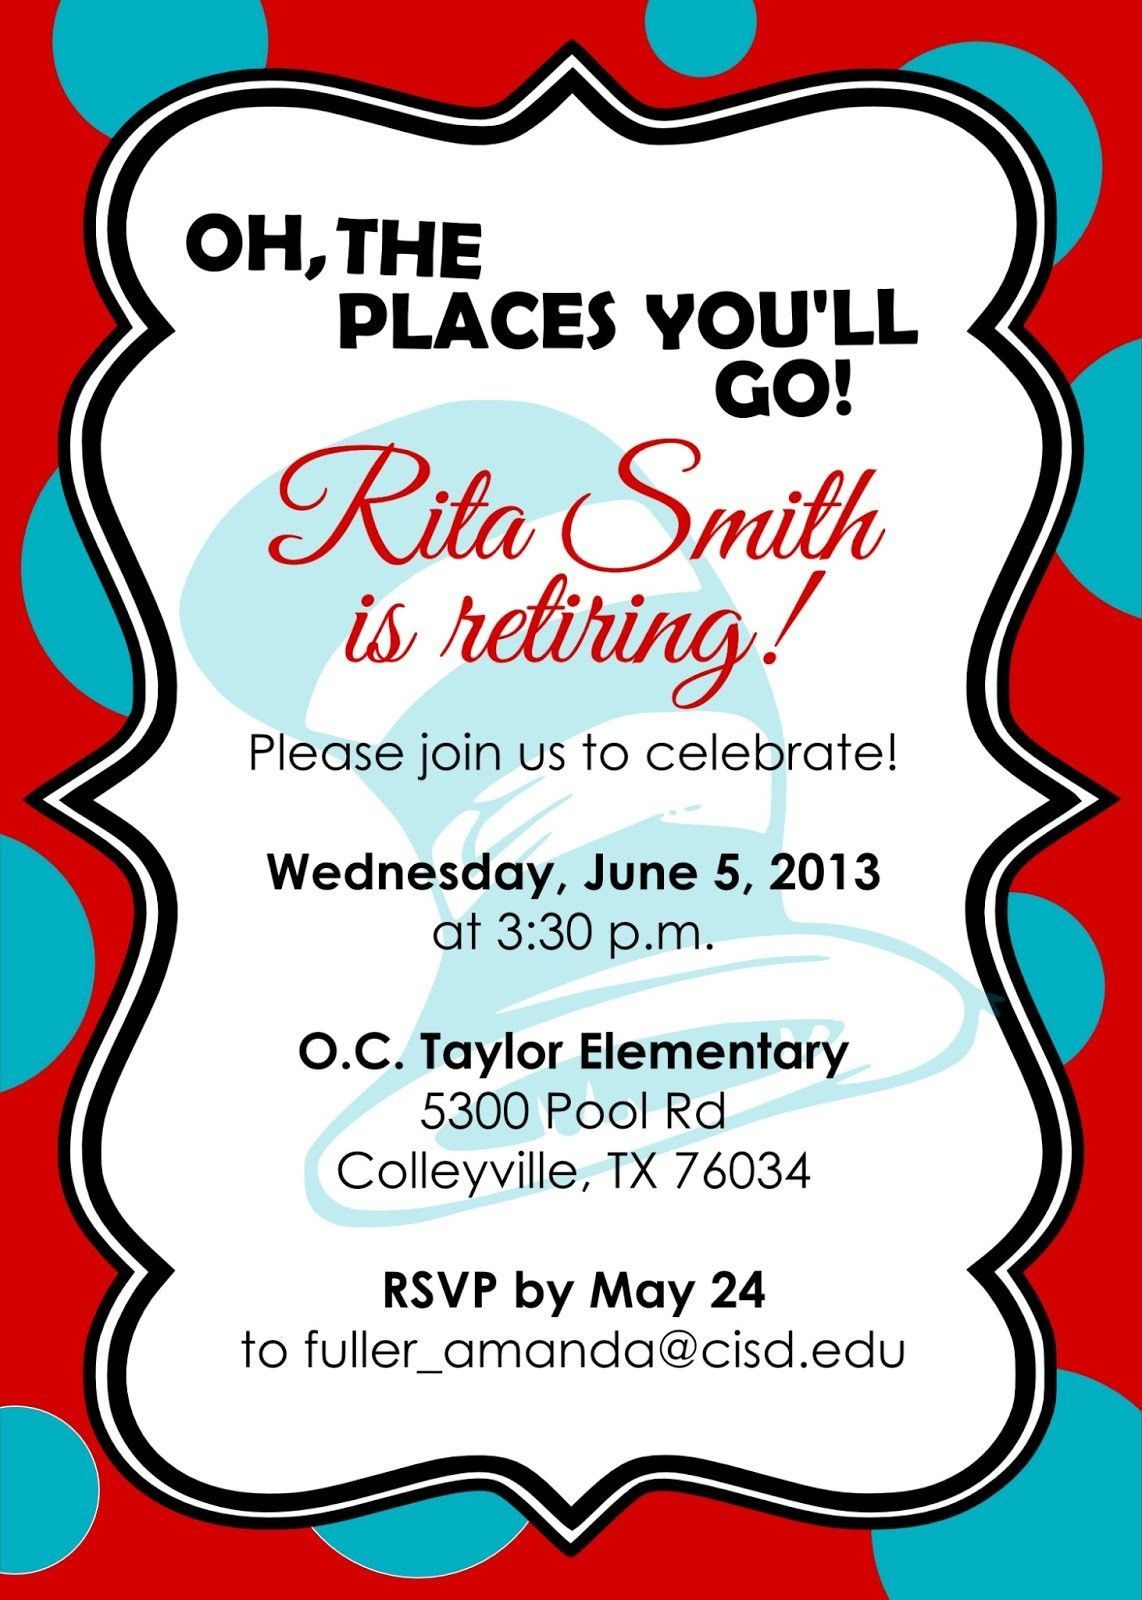 007 Incredible Retirement Party Invite Template Word Free Picture Full